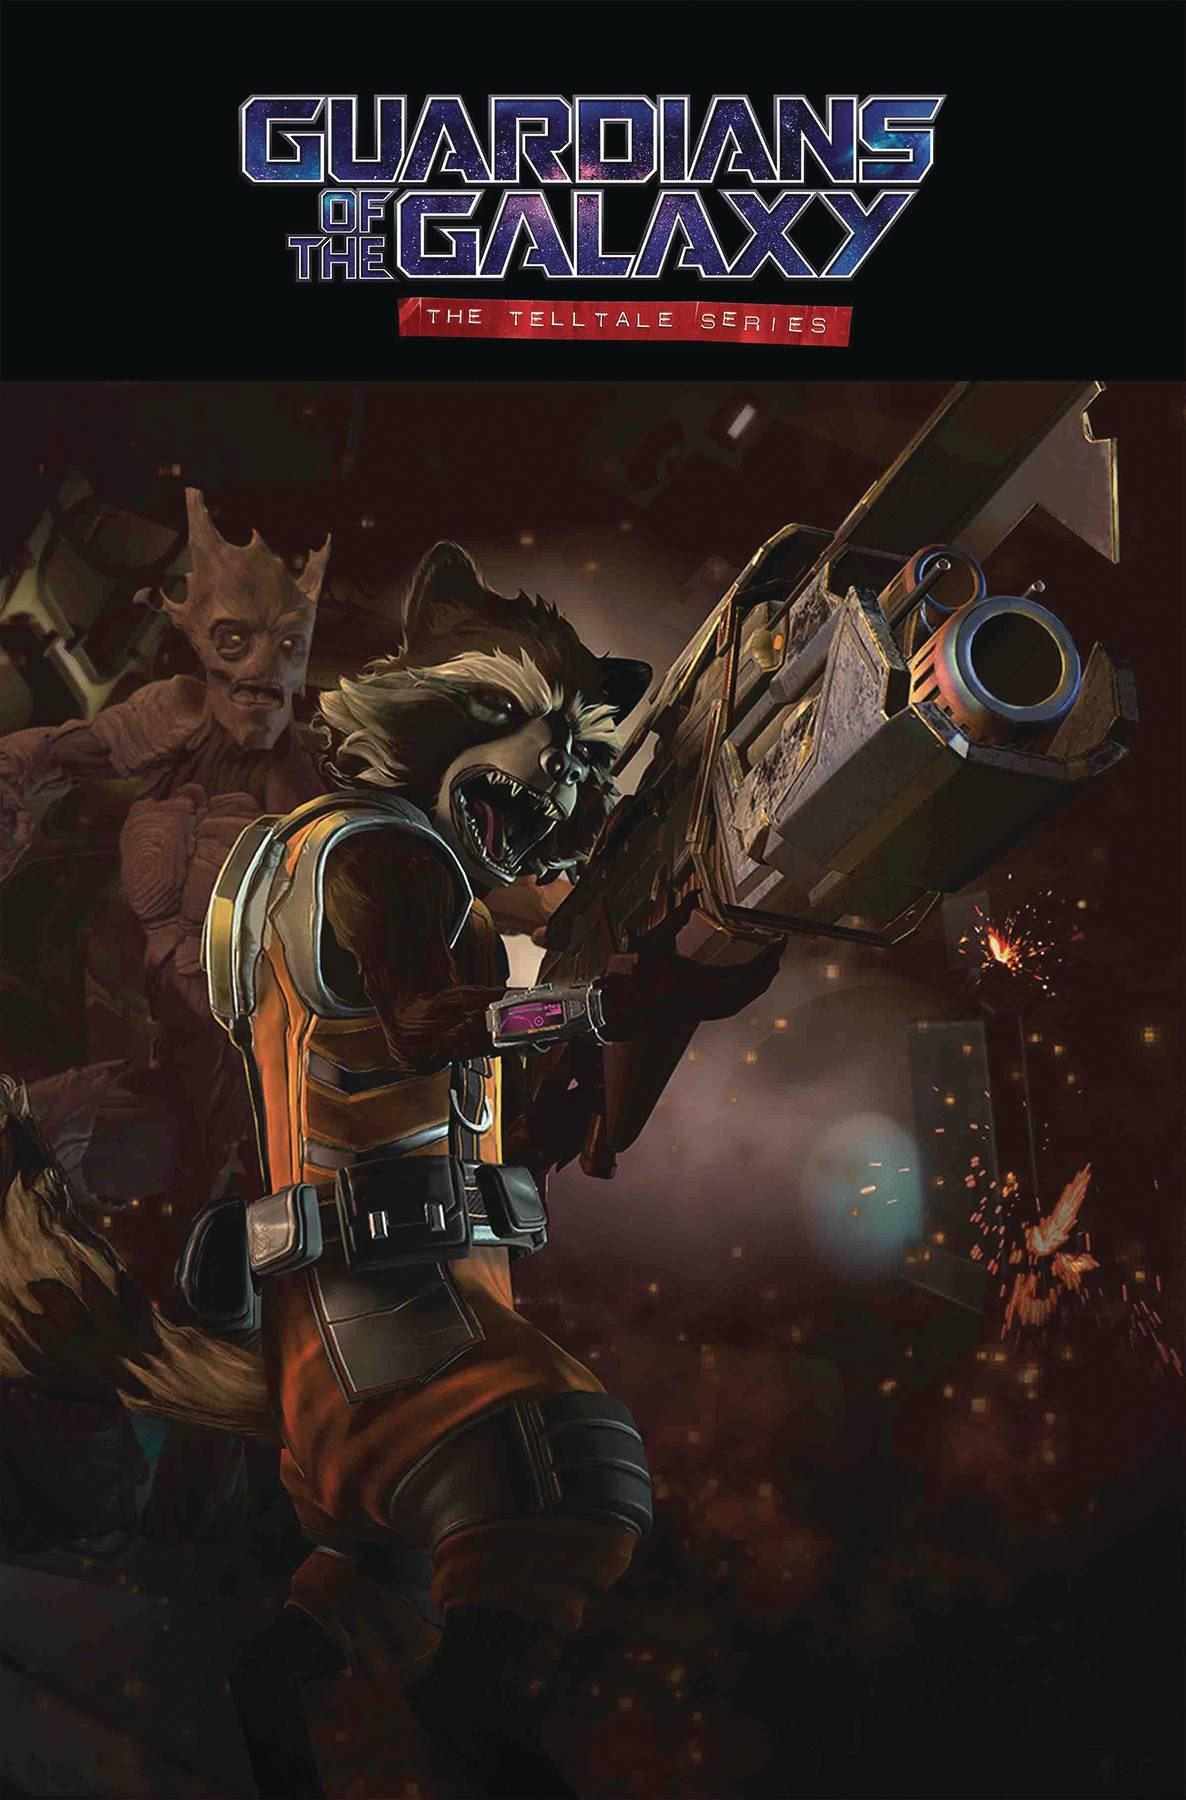 GUARDIANS OF THE GALAXY: THE TELLTALE SERIES#2